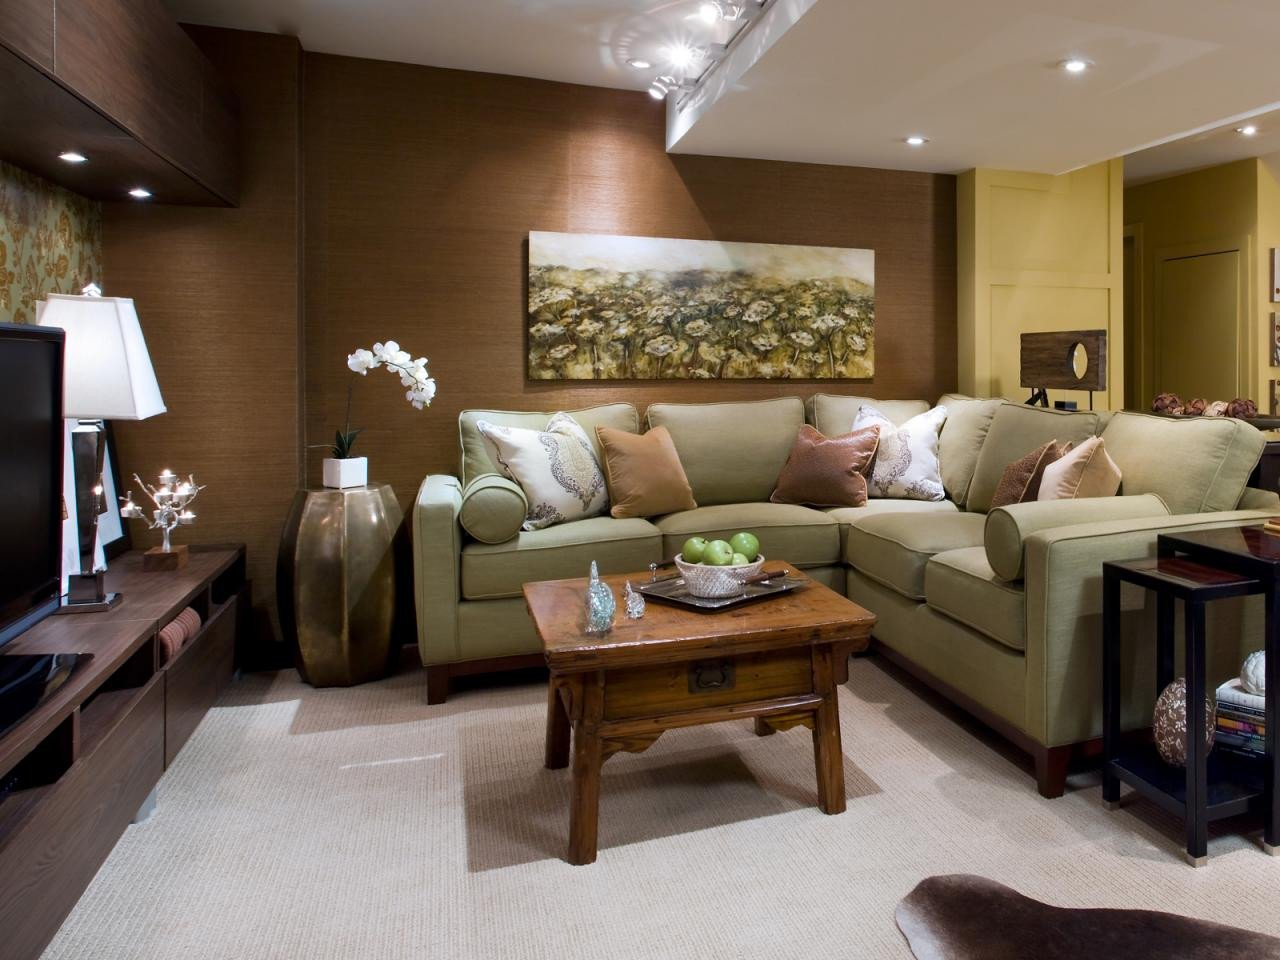 Small Basement Living Room Ideas 10 Chic Basements by Candice Olson